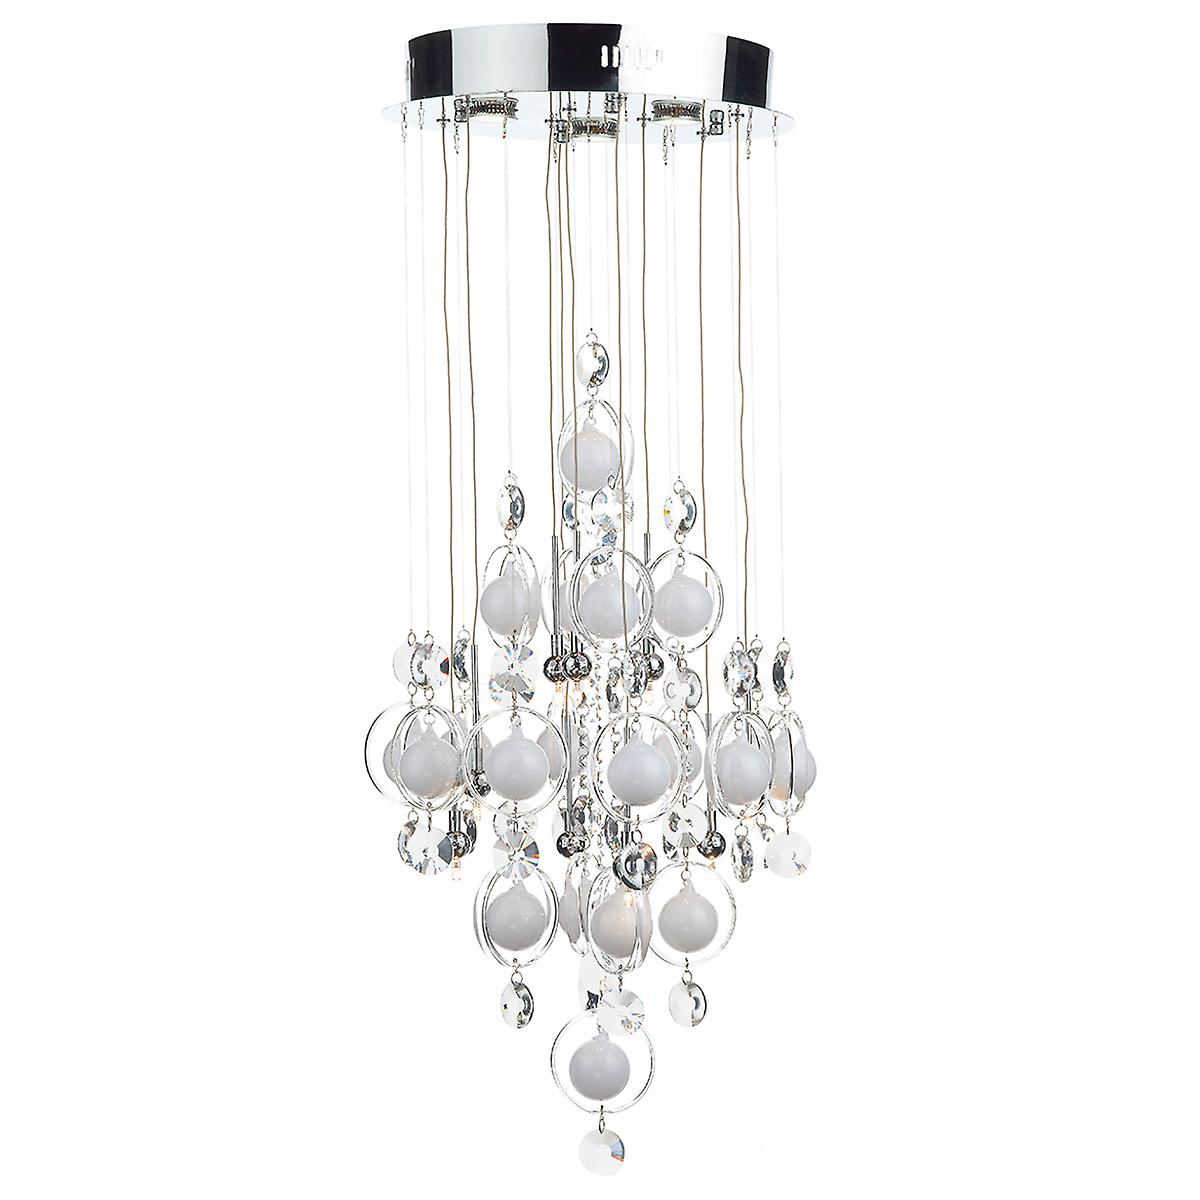 Dar CLO1250 Cloud Modern 12 Light Halogen Crystal Drop Ceiling Pendant